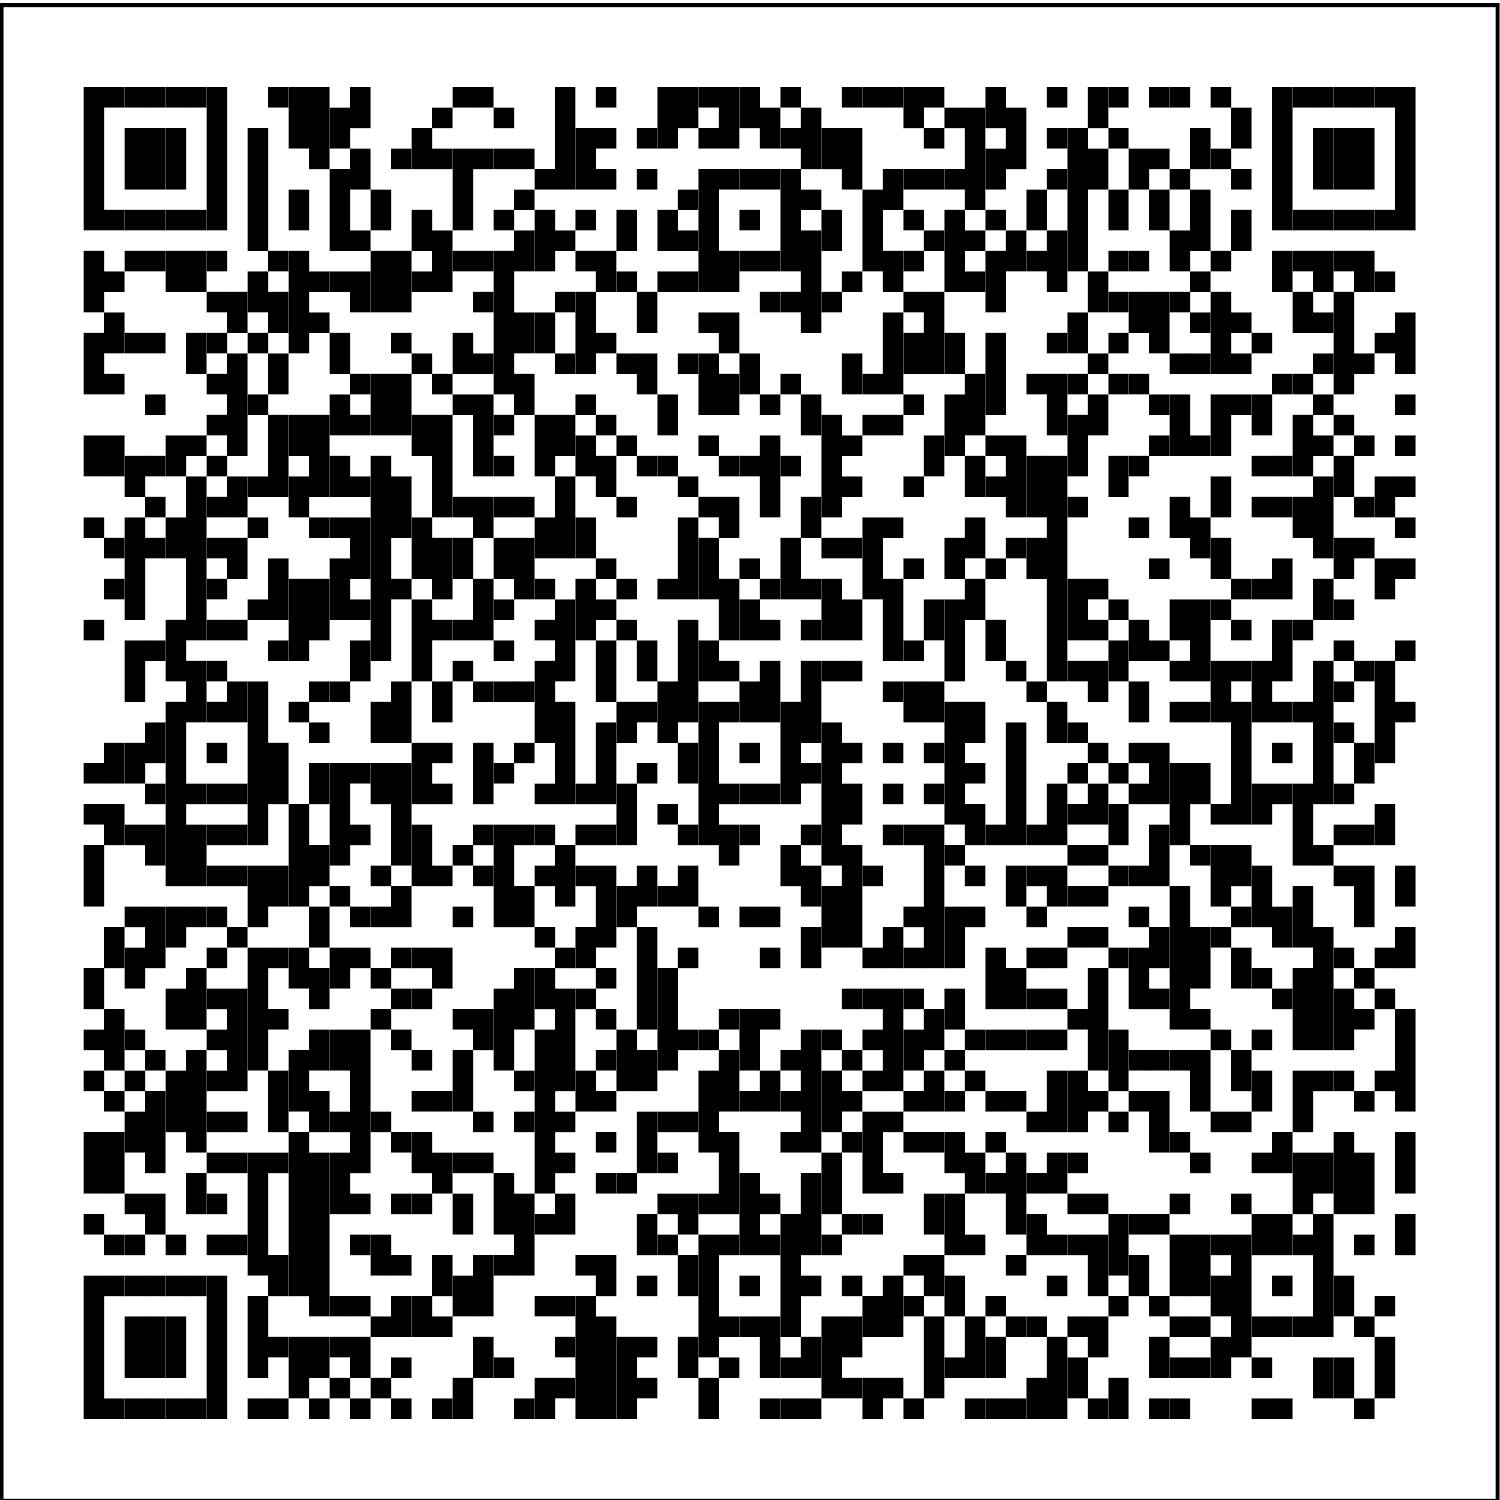 QR code for CU System employees